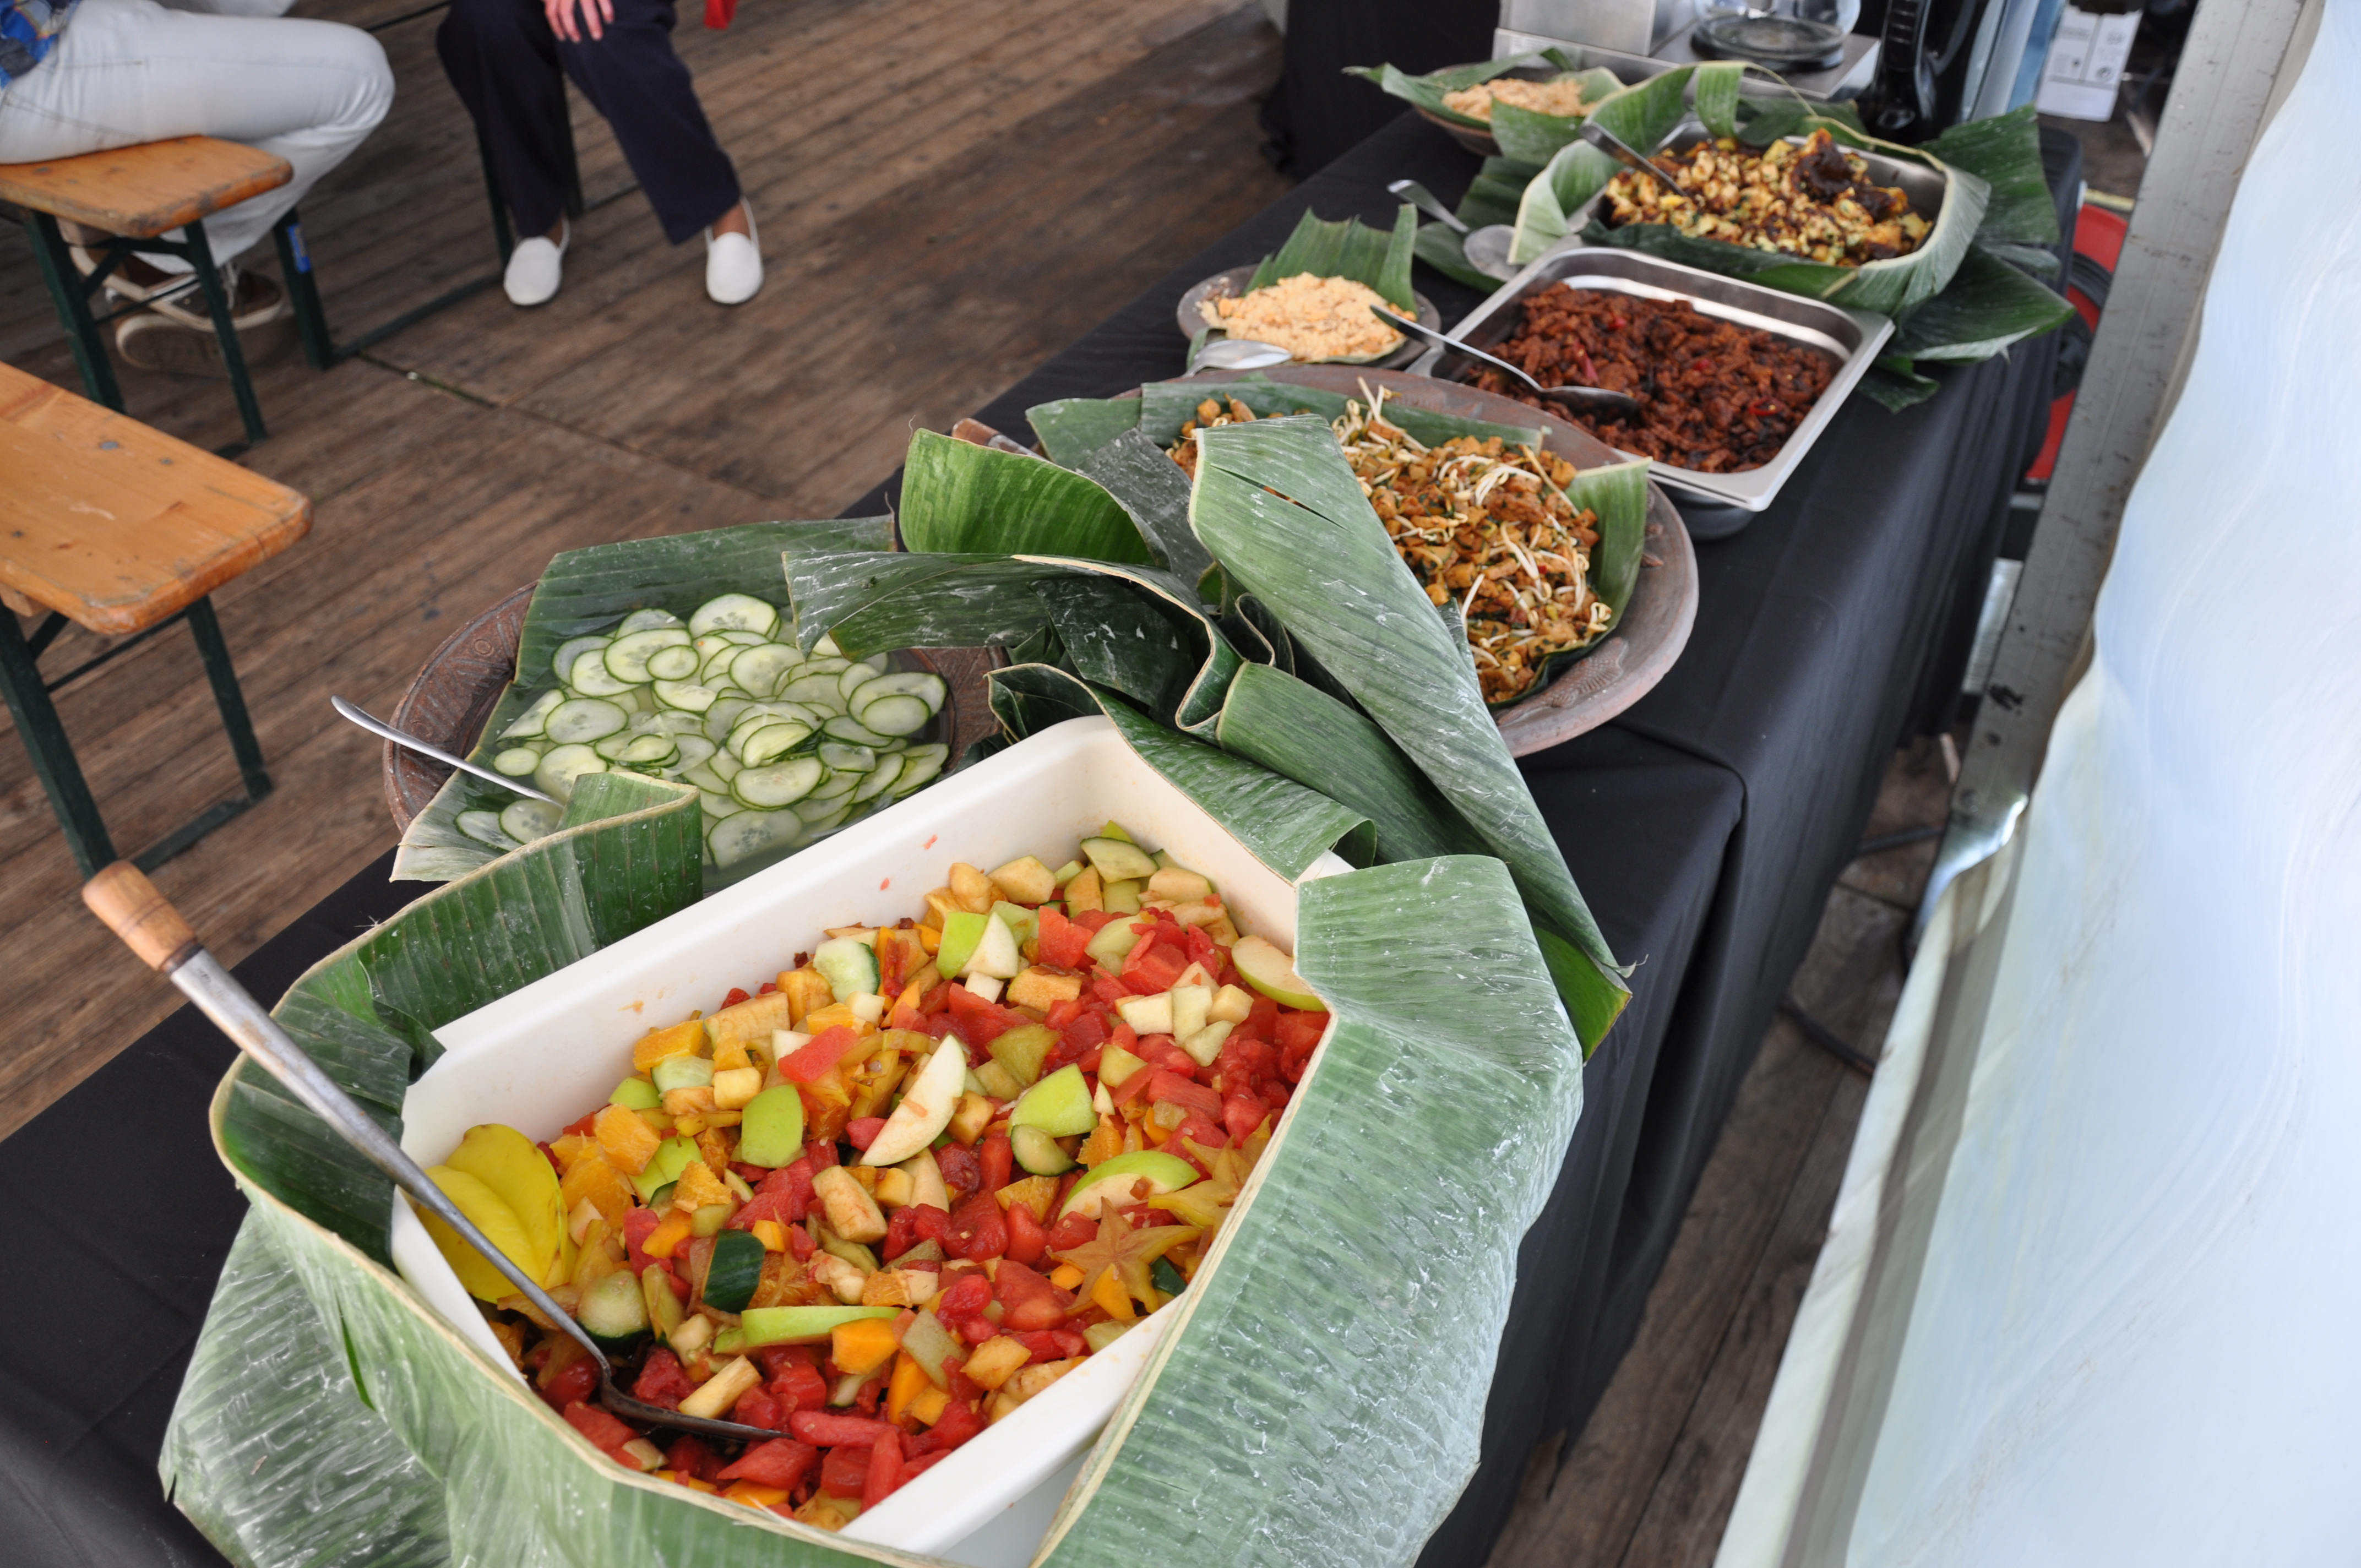 salade buffet,Indische Molukse catering